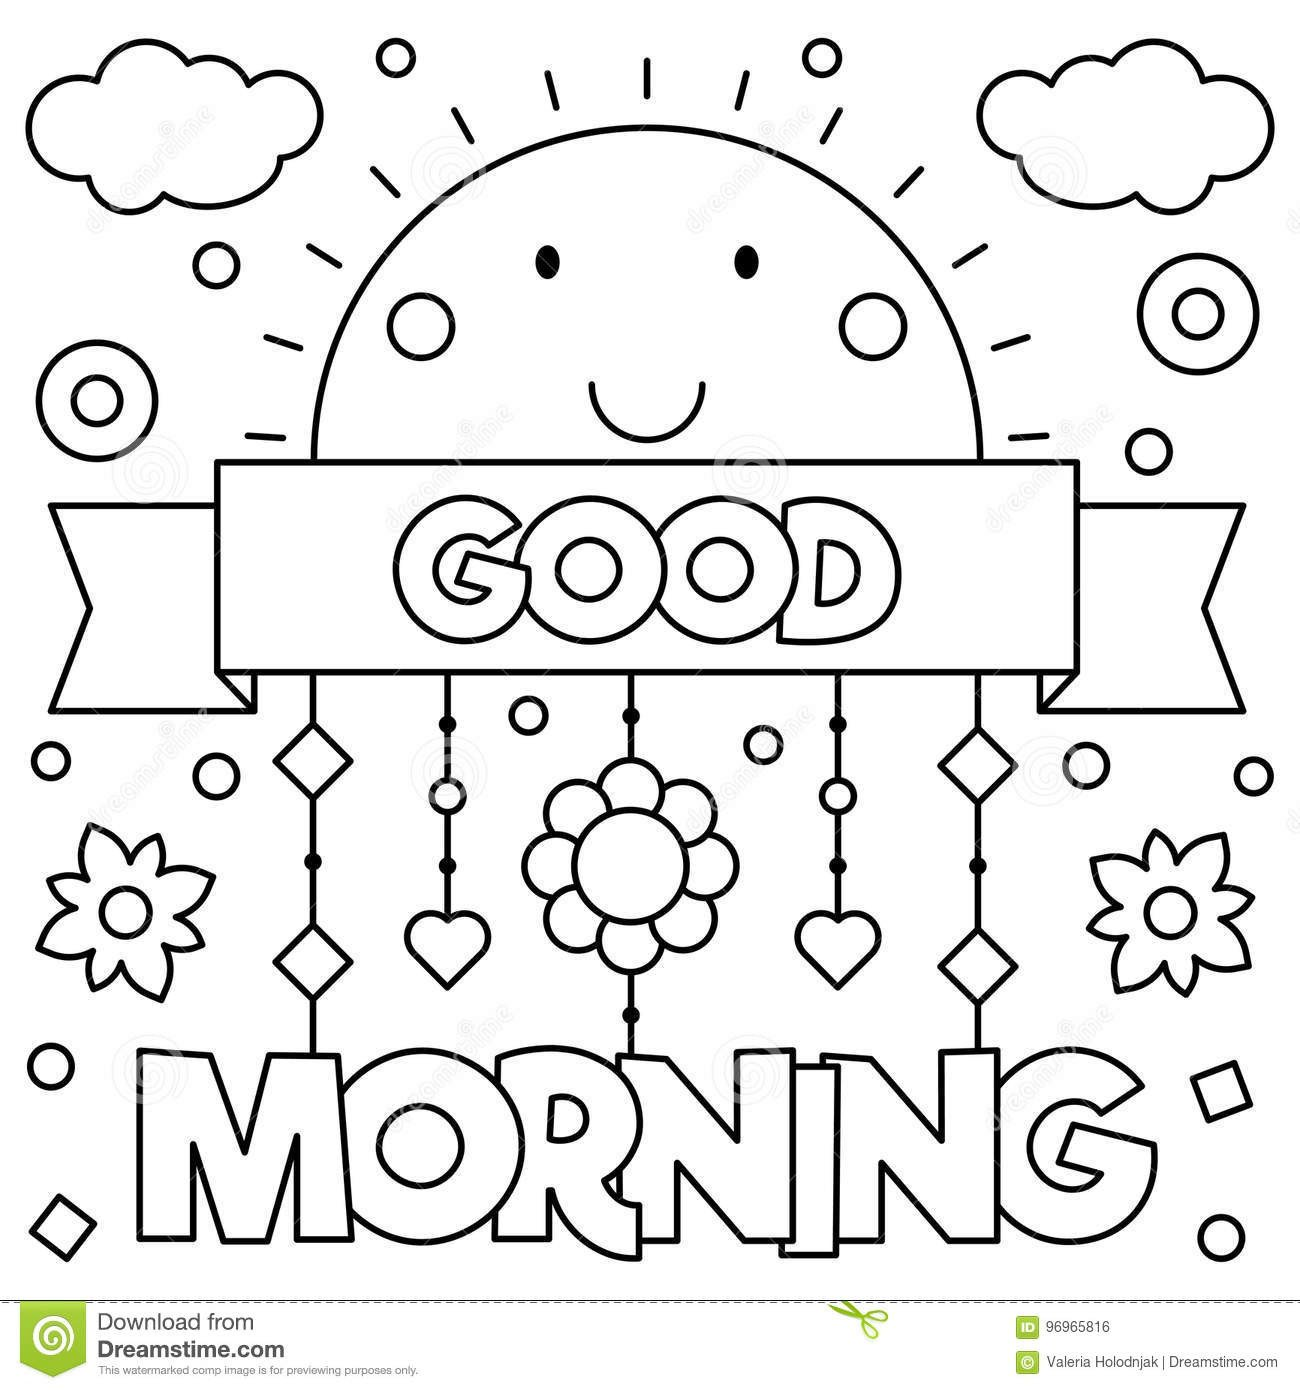 good morning coloring page vector illustration black white